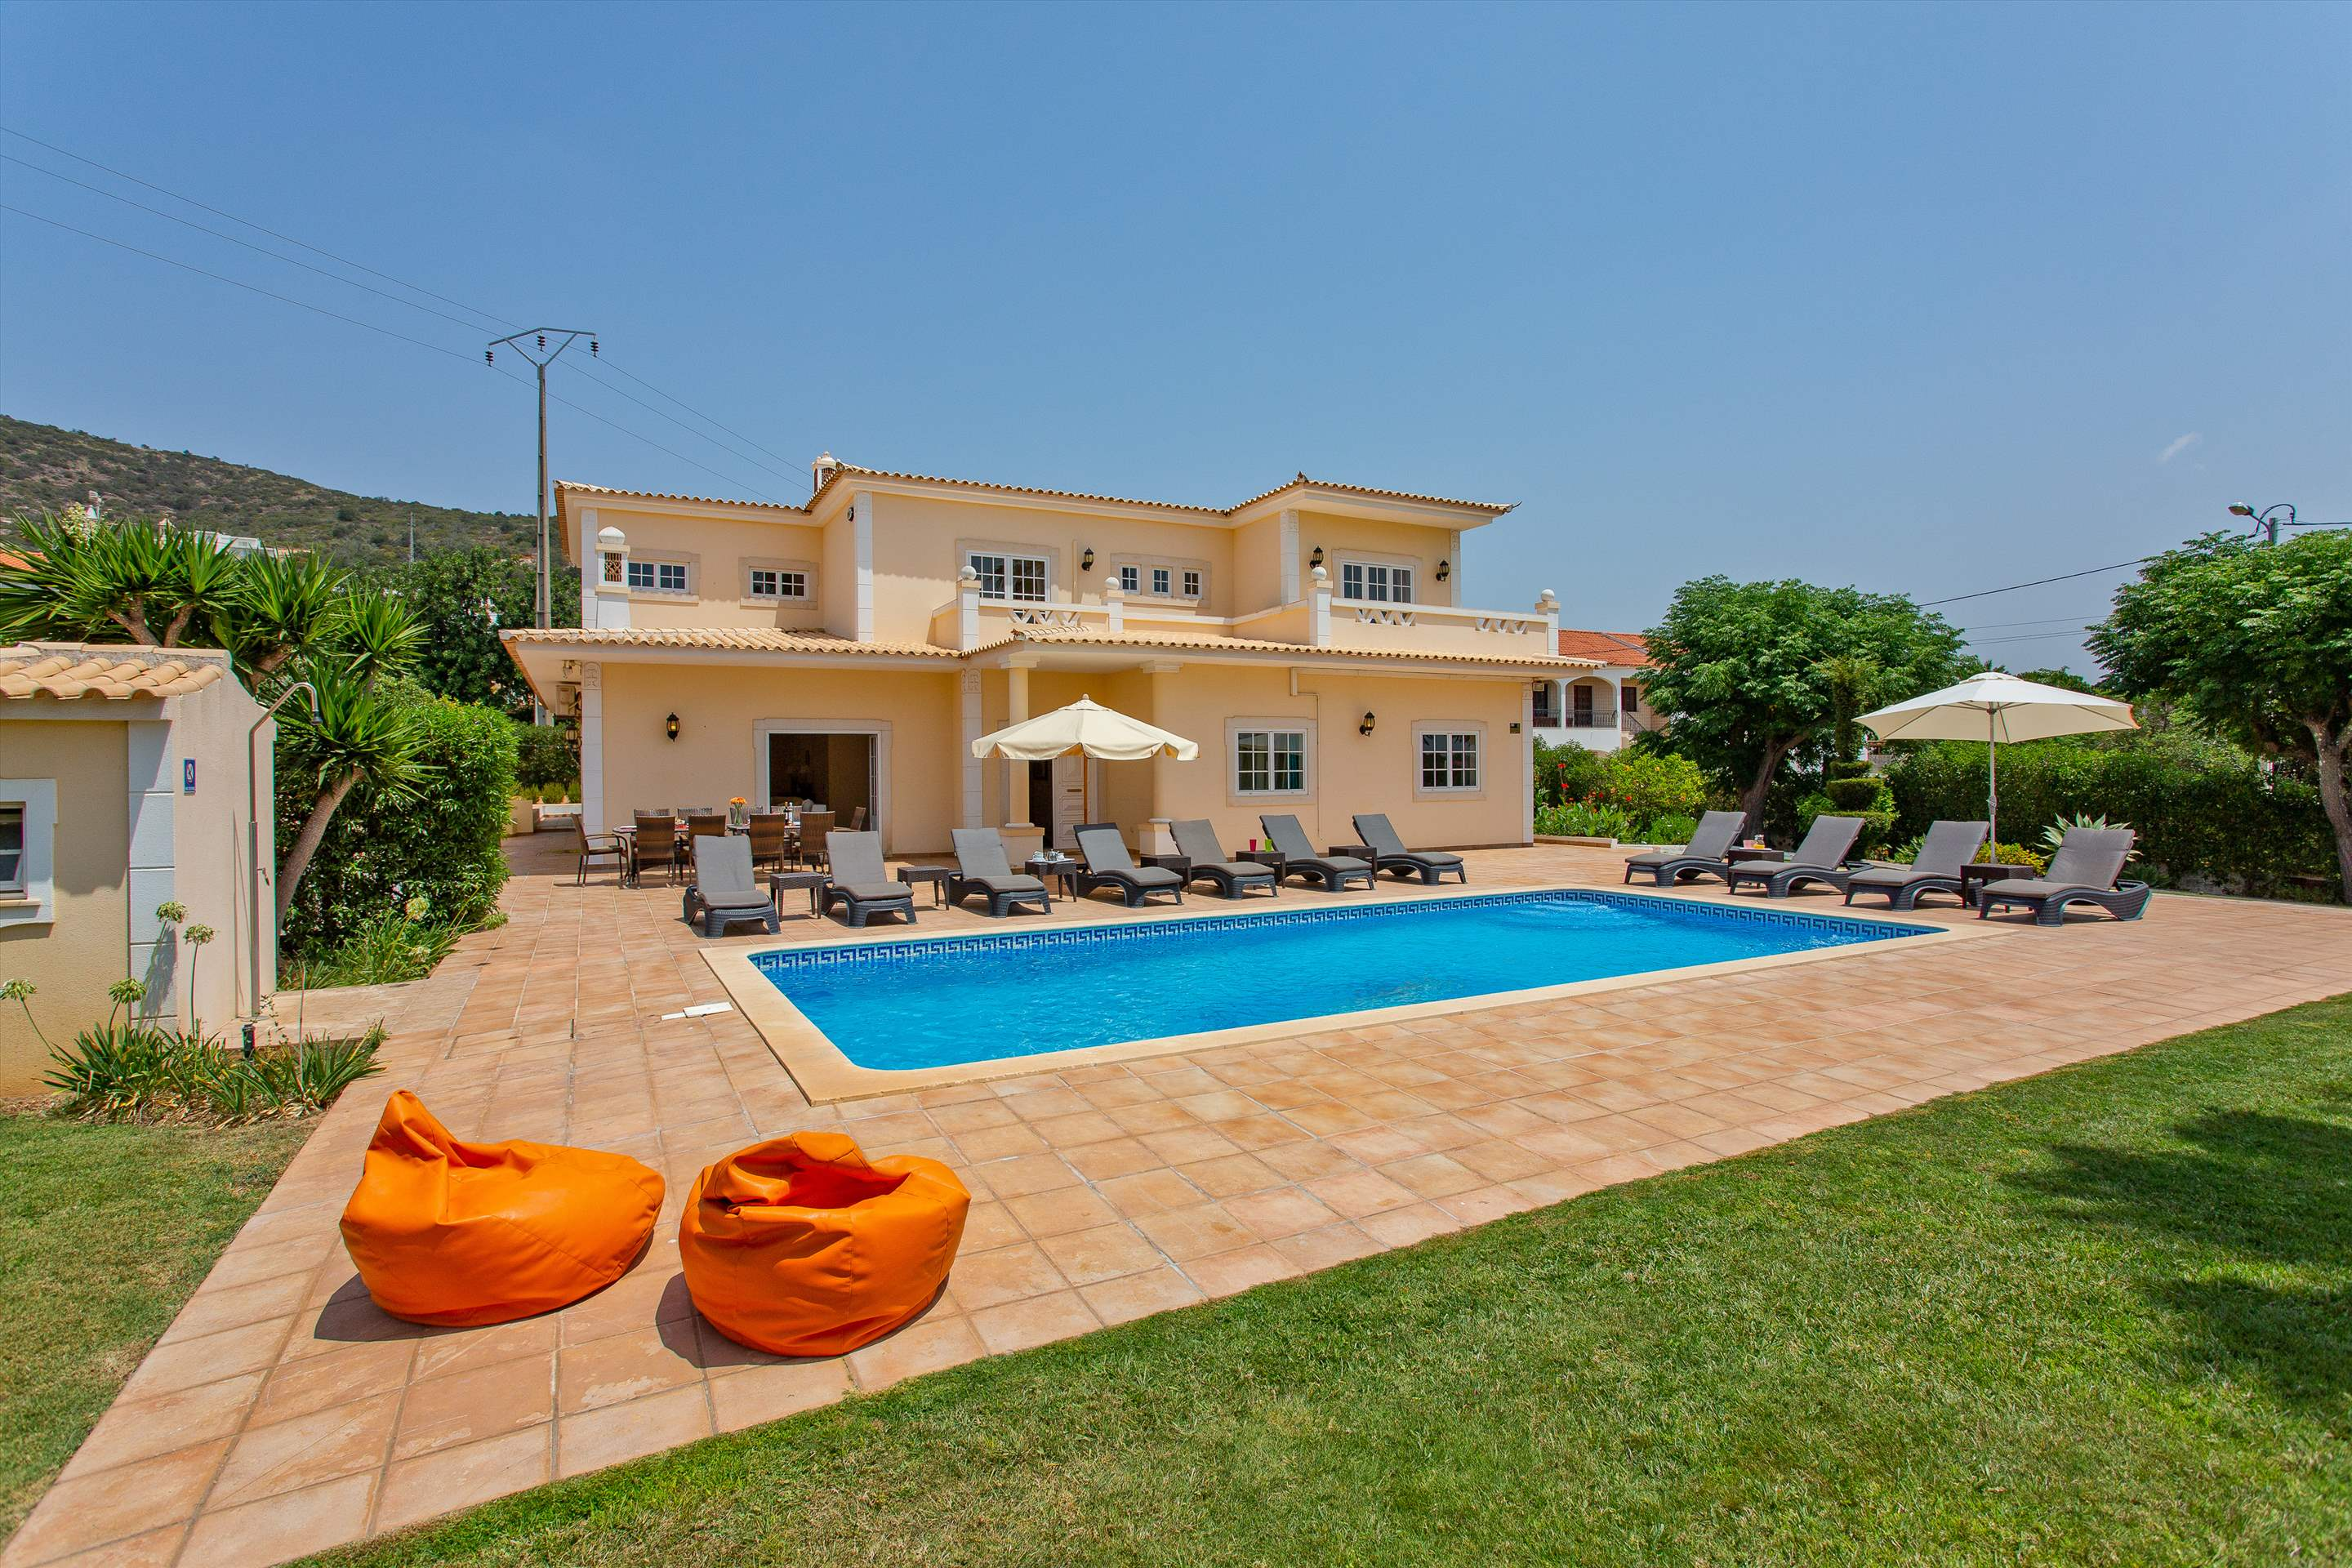 Quinta do Bruno, Four Bedroom Rate, 4 bedroom villa in Vilamoura Area, Algarve